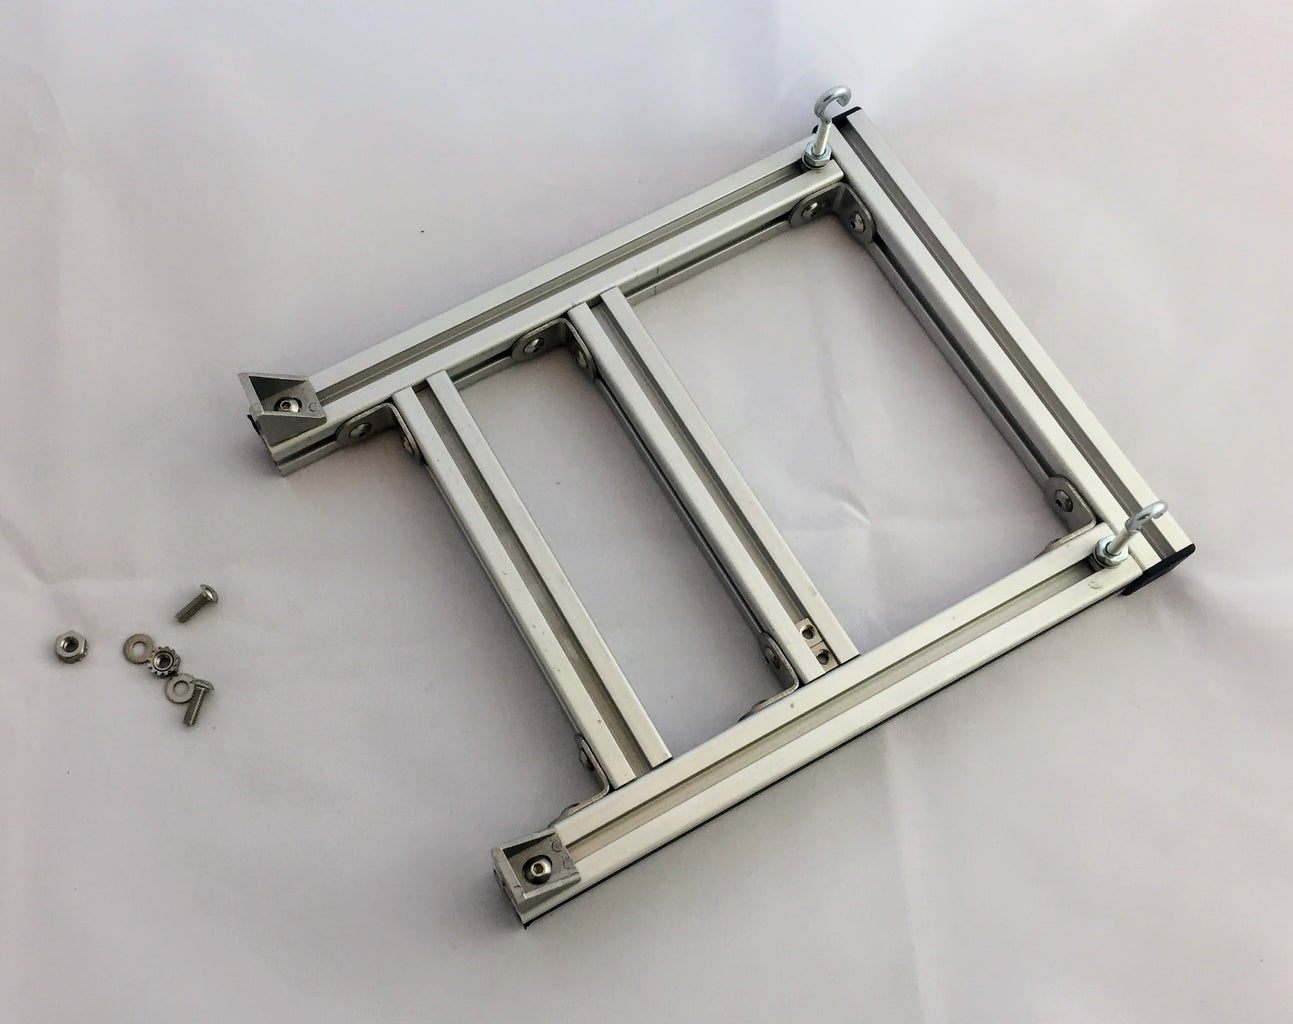 Building the Frame